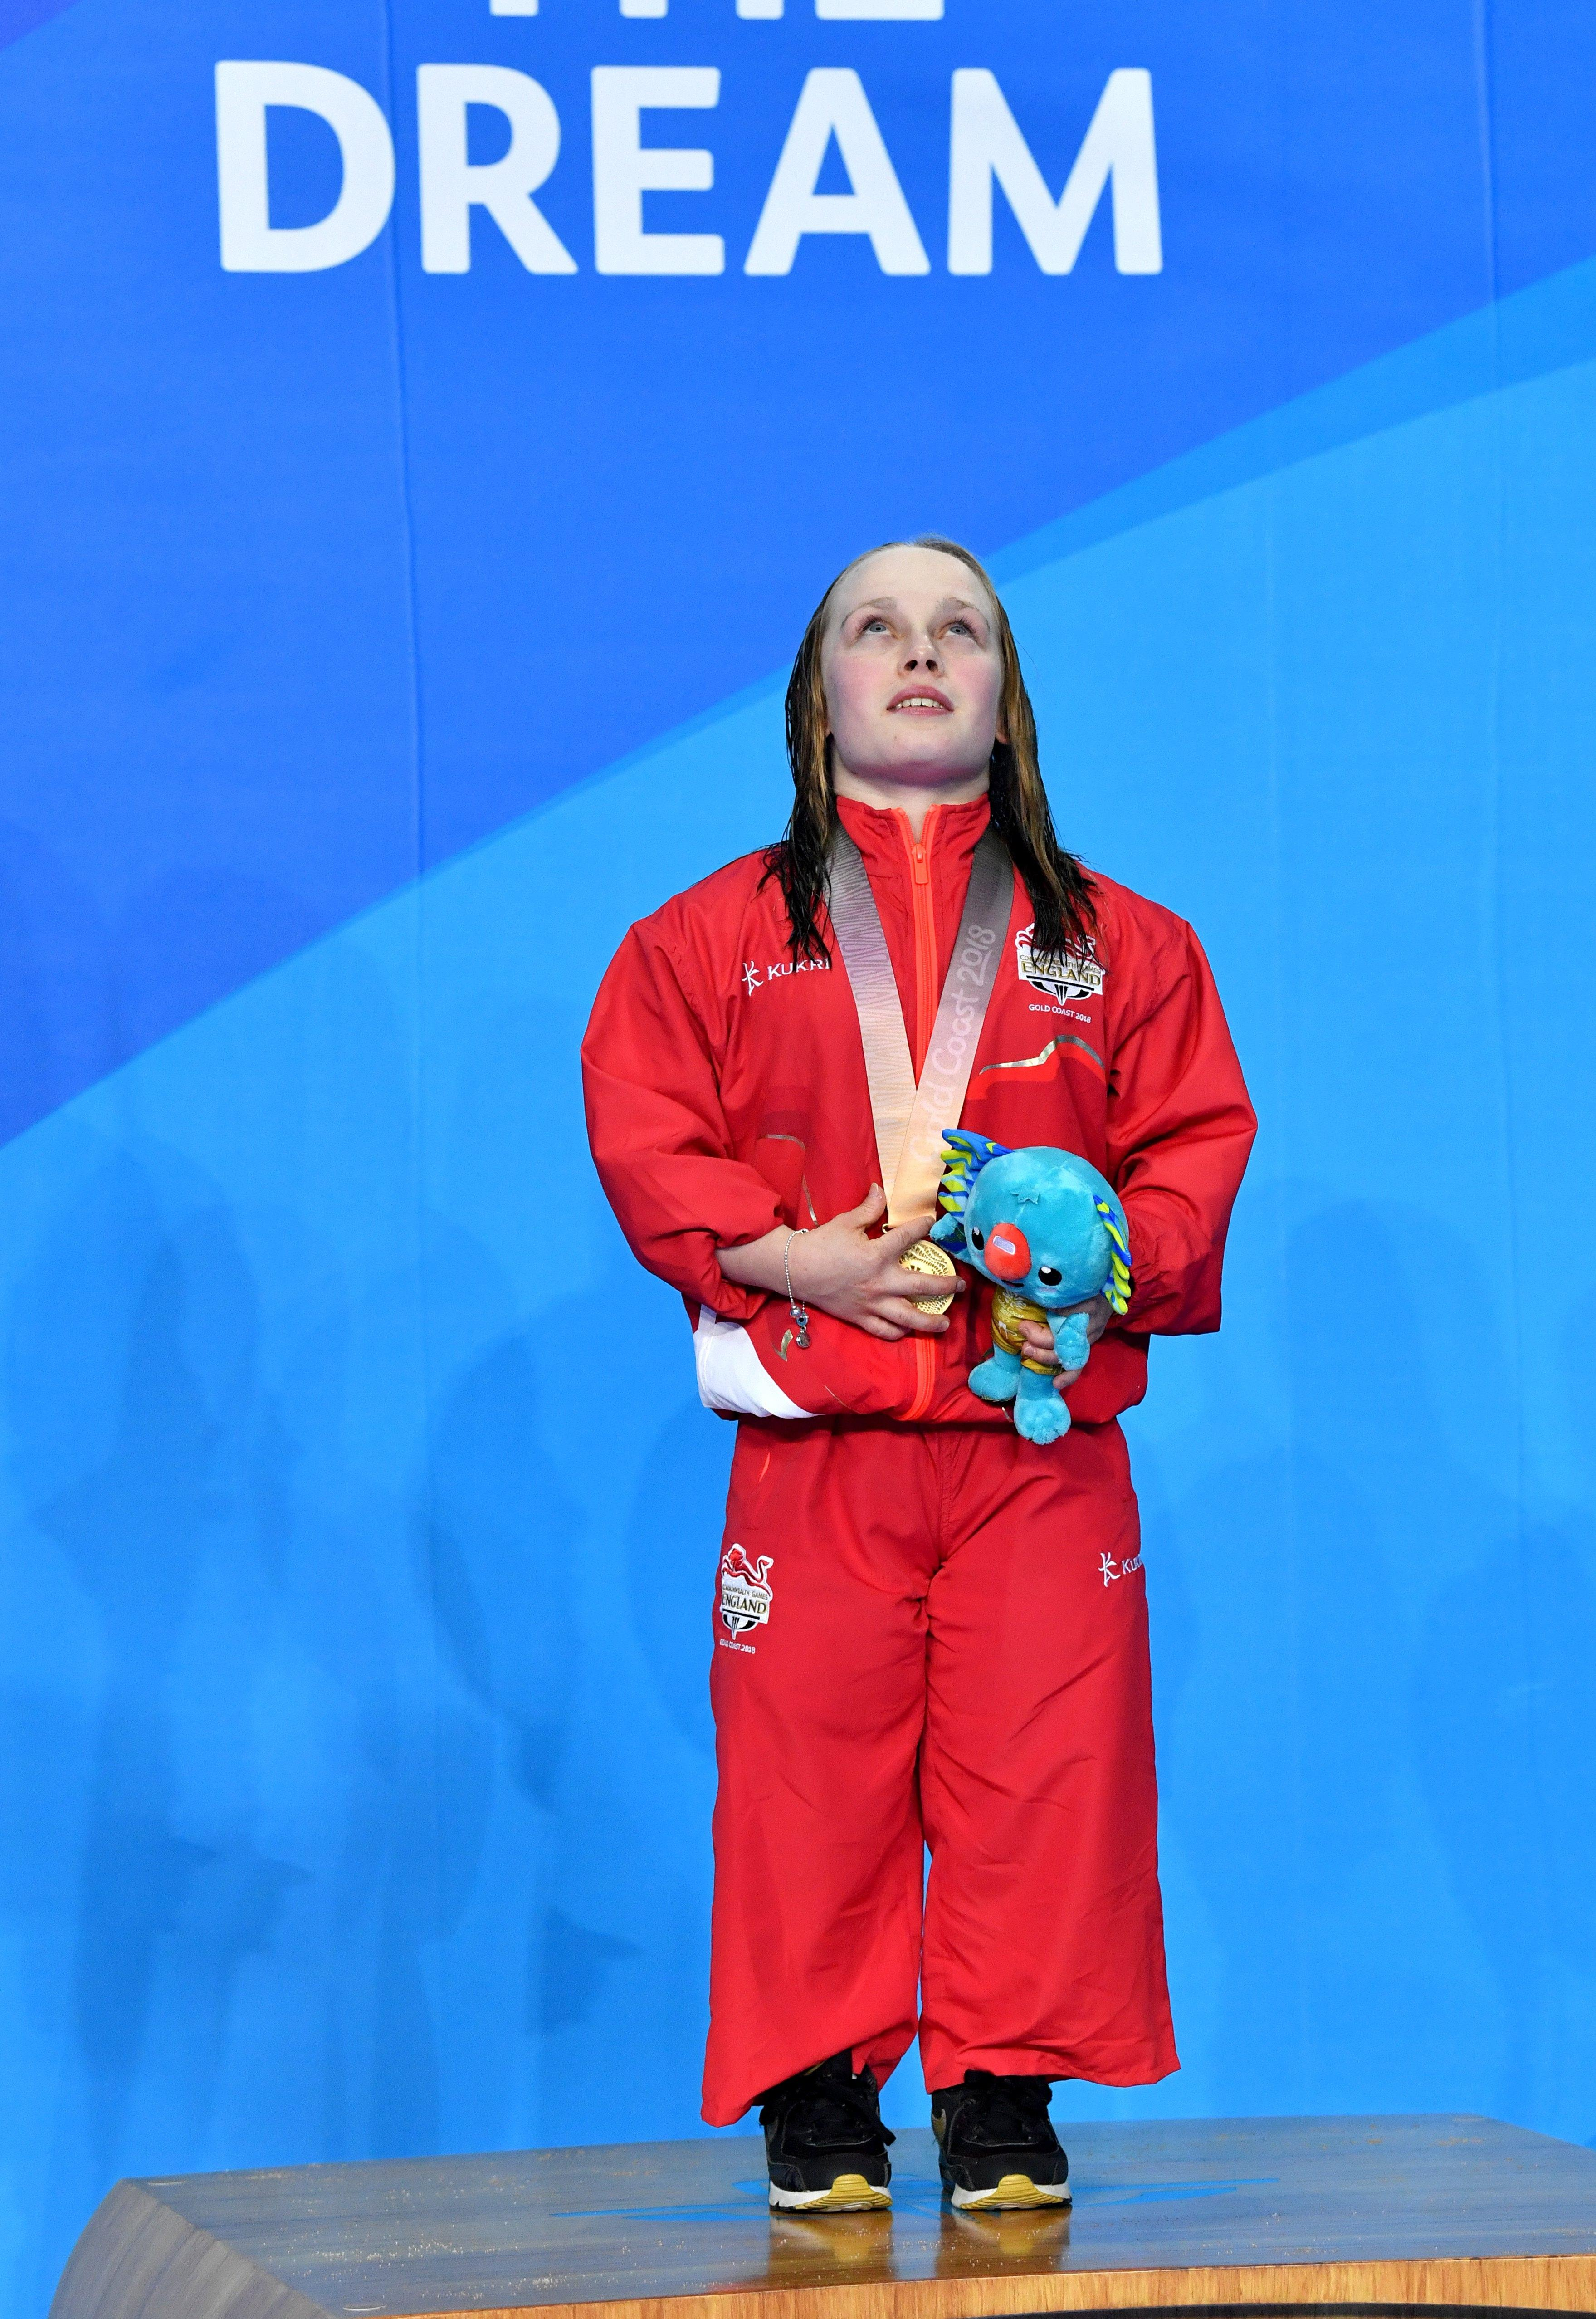 16-year-old Ellie Robinson won the gold medal in S7 50m butterfly